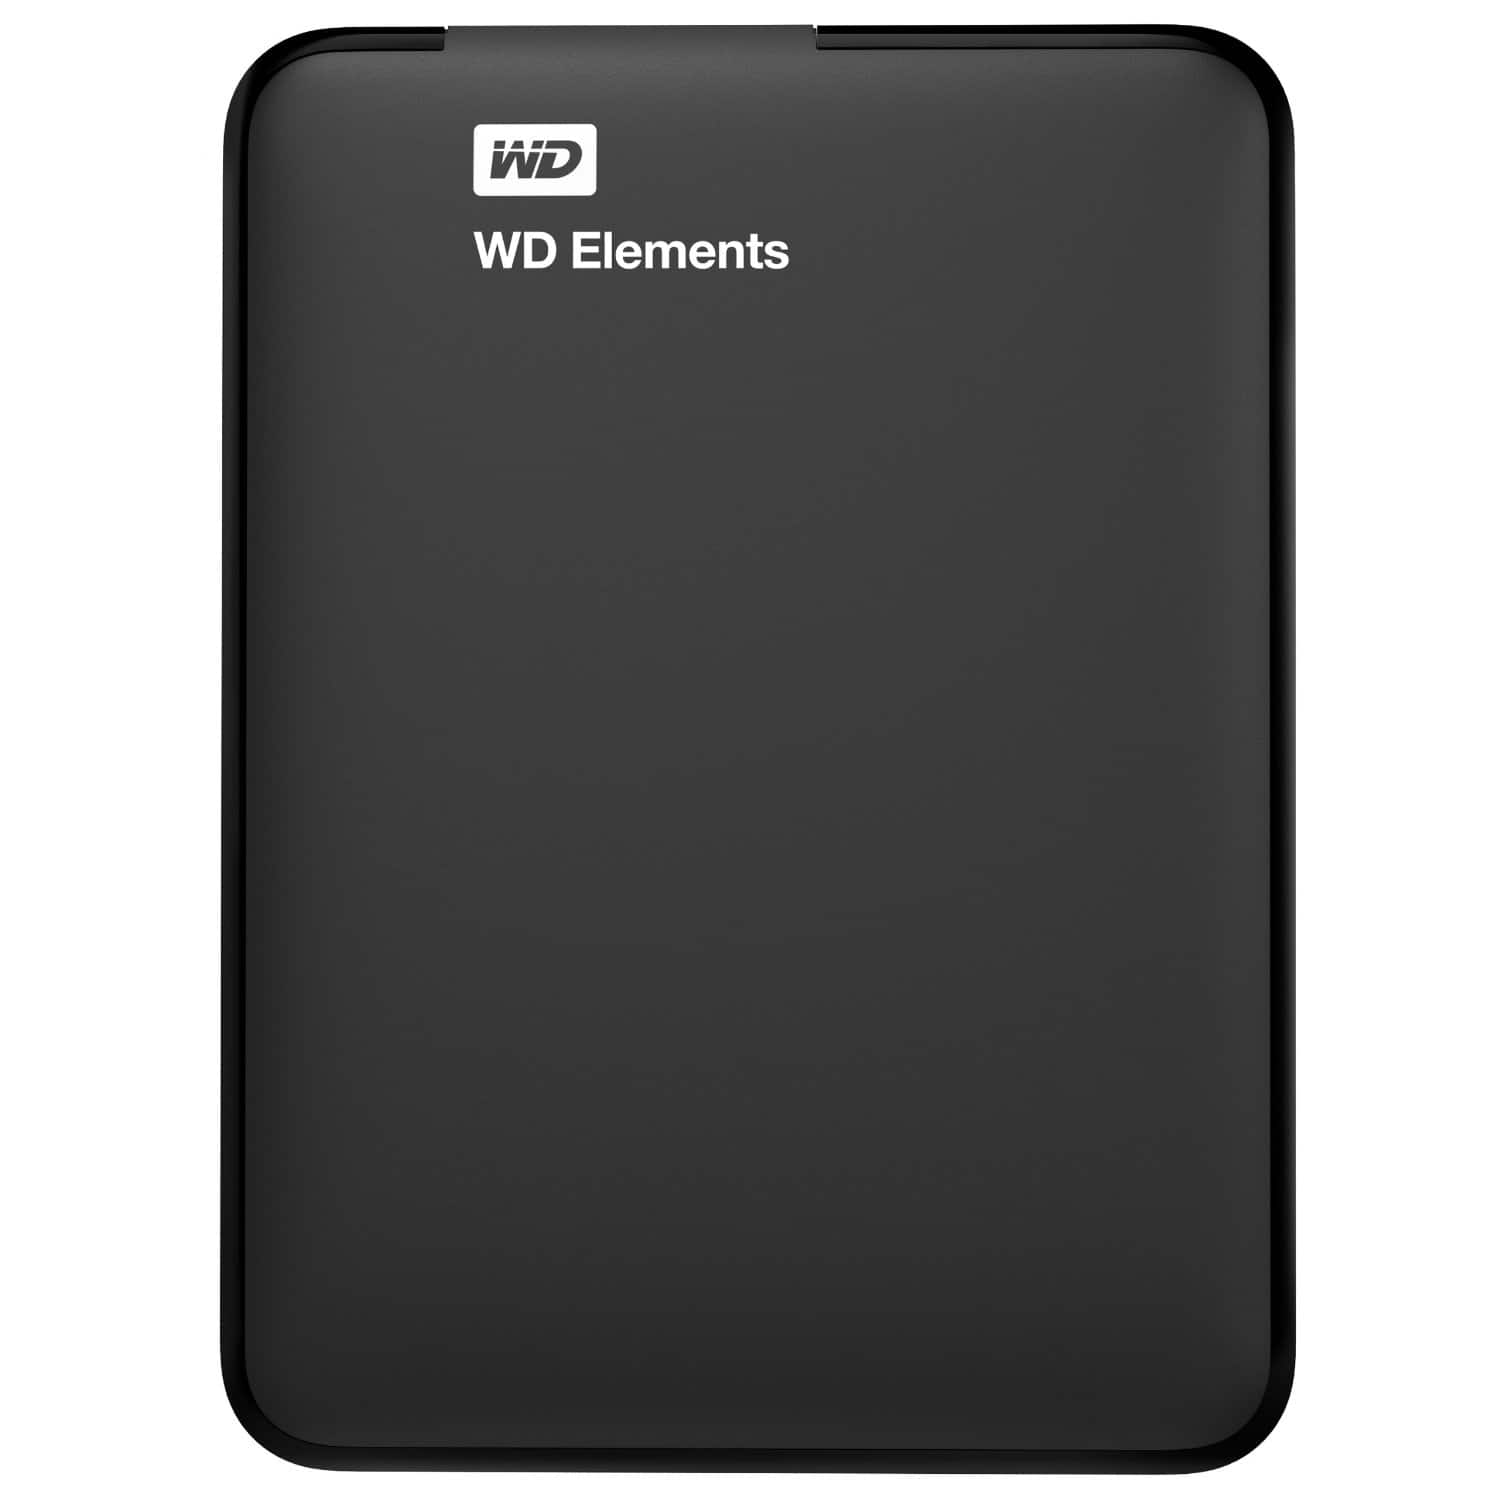 Western Digital Elements 2TB USB 3.0 Portable External Hard Drive $69.99